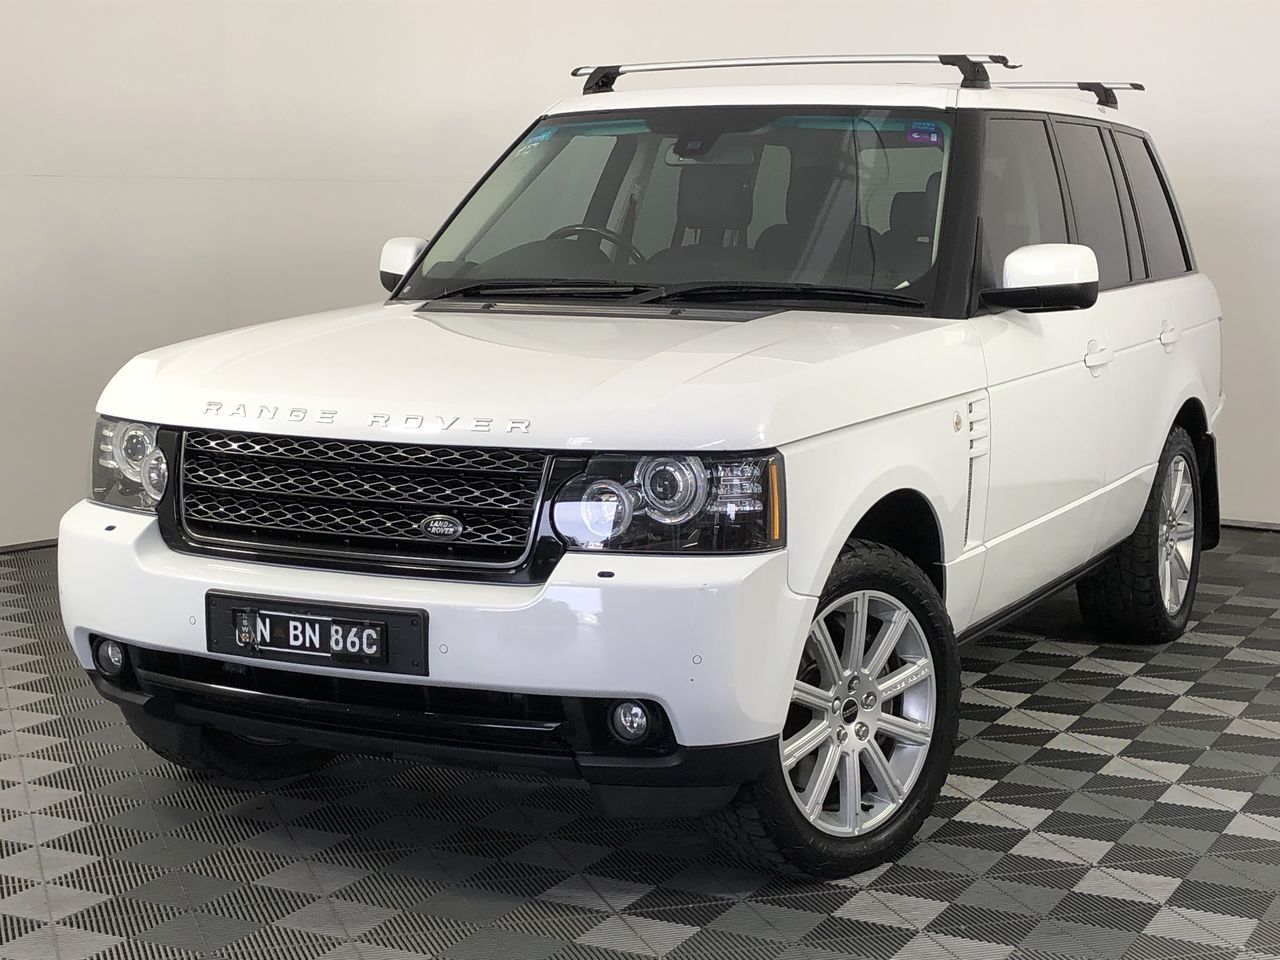 2011 Land Rover Range Rover Vogue TDV8 T/Diesel Automatic - 8 Speed Wagon